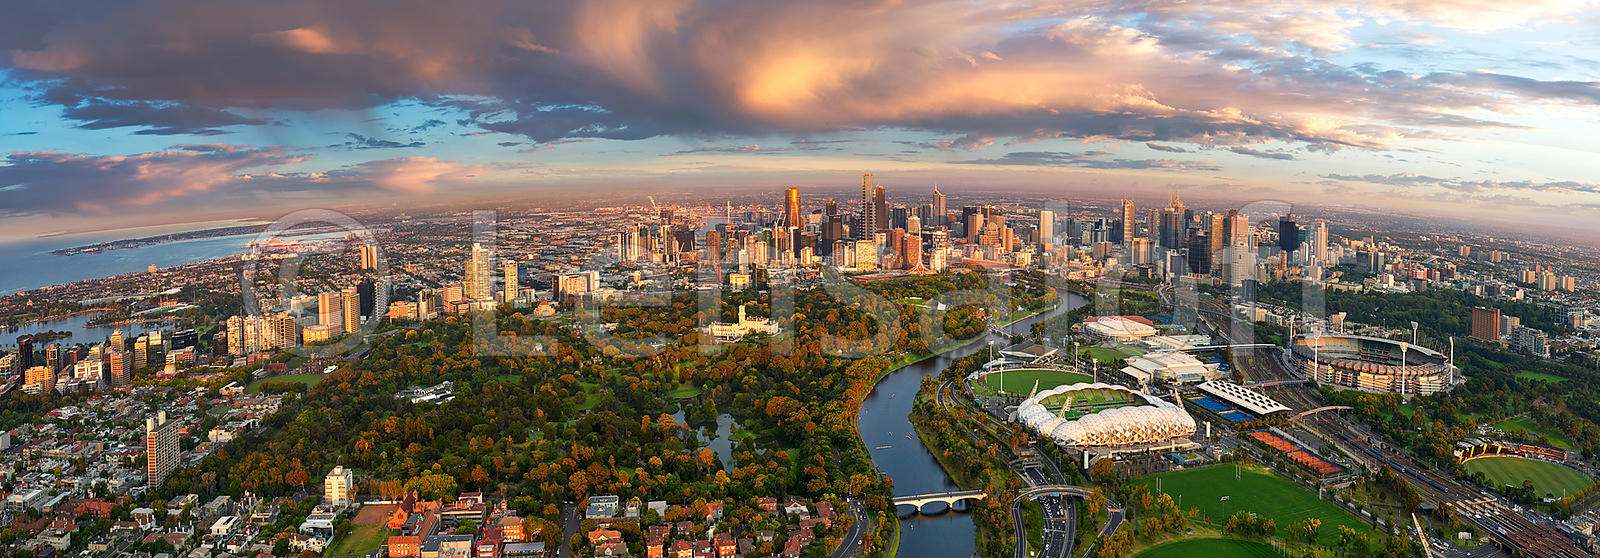 Melbourne Sunrise Panorama